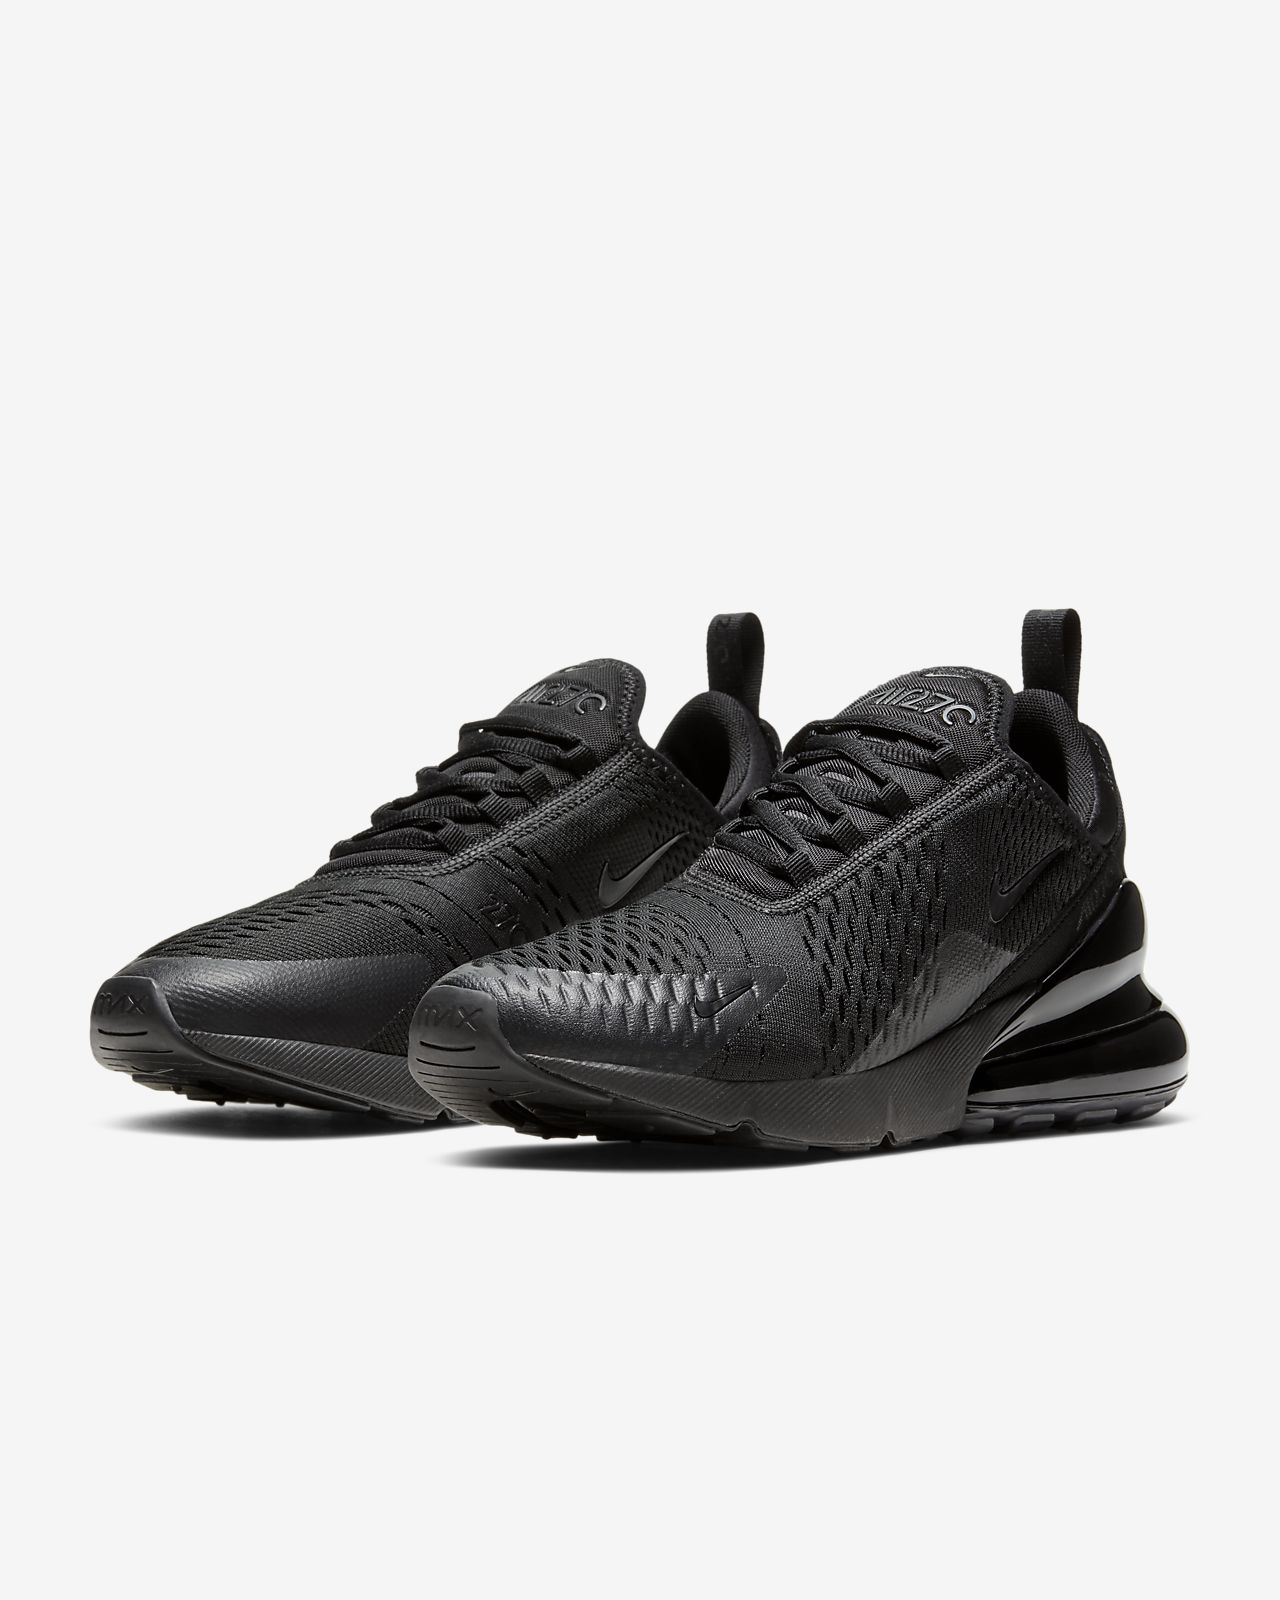 reputable site 110e9 f661c ... Nike Air Max 270 Mens Shoe